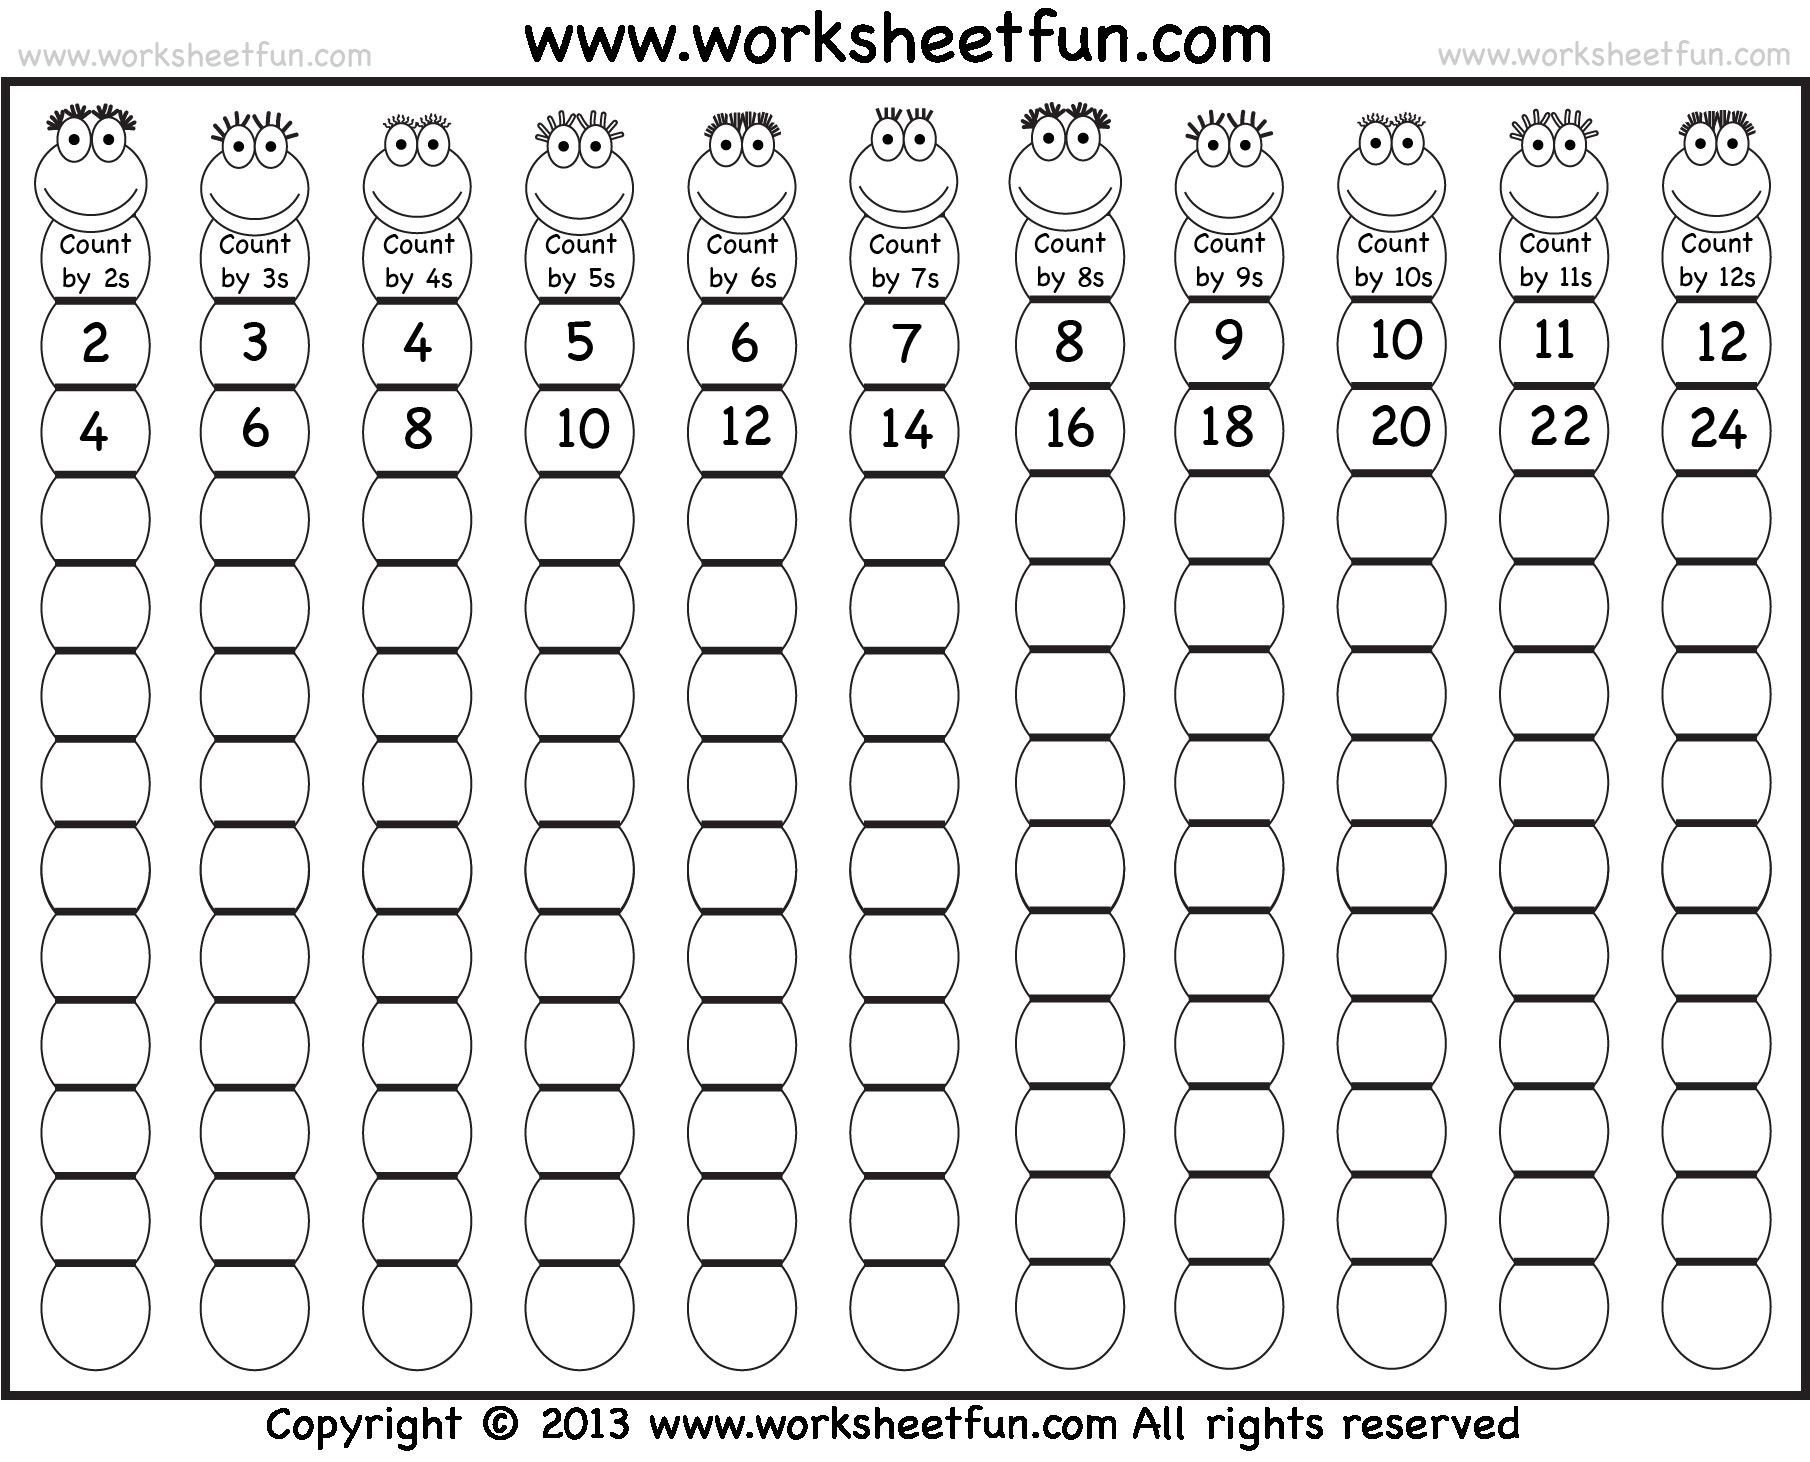 Skip Counting by 6 Worksheets 5 Free Math Worksheets Second Grade 2 Skip Counting Skip